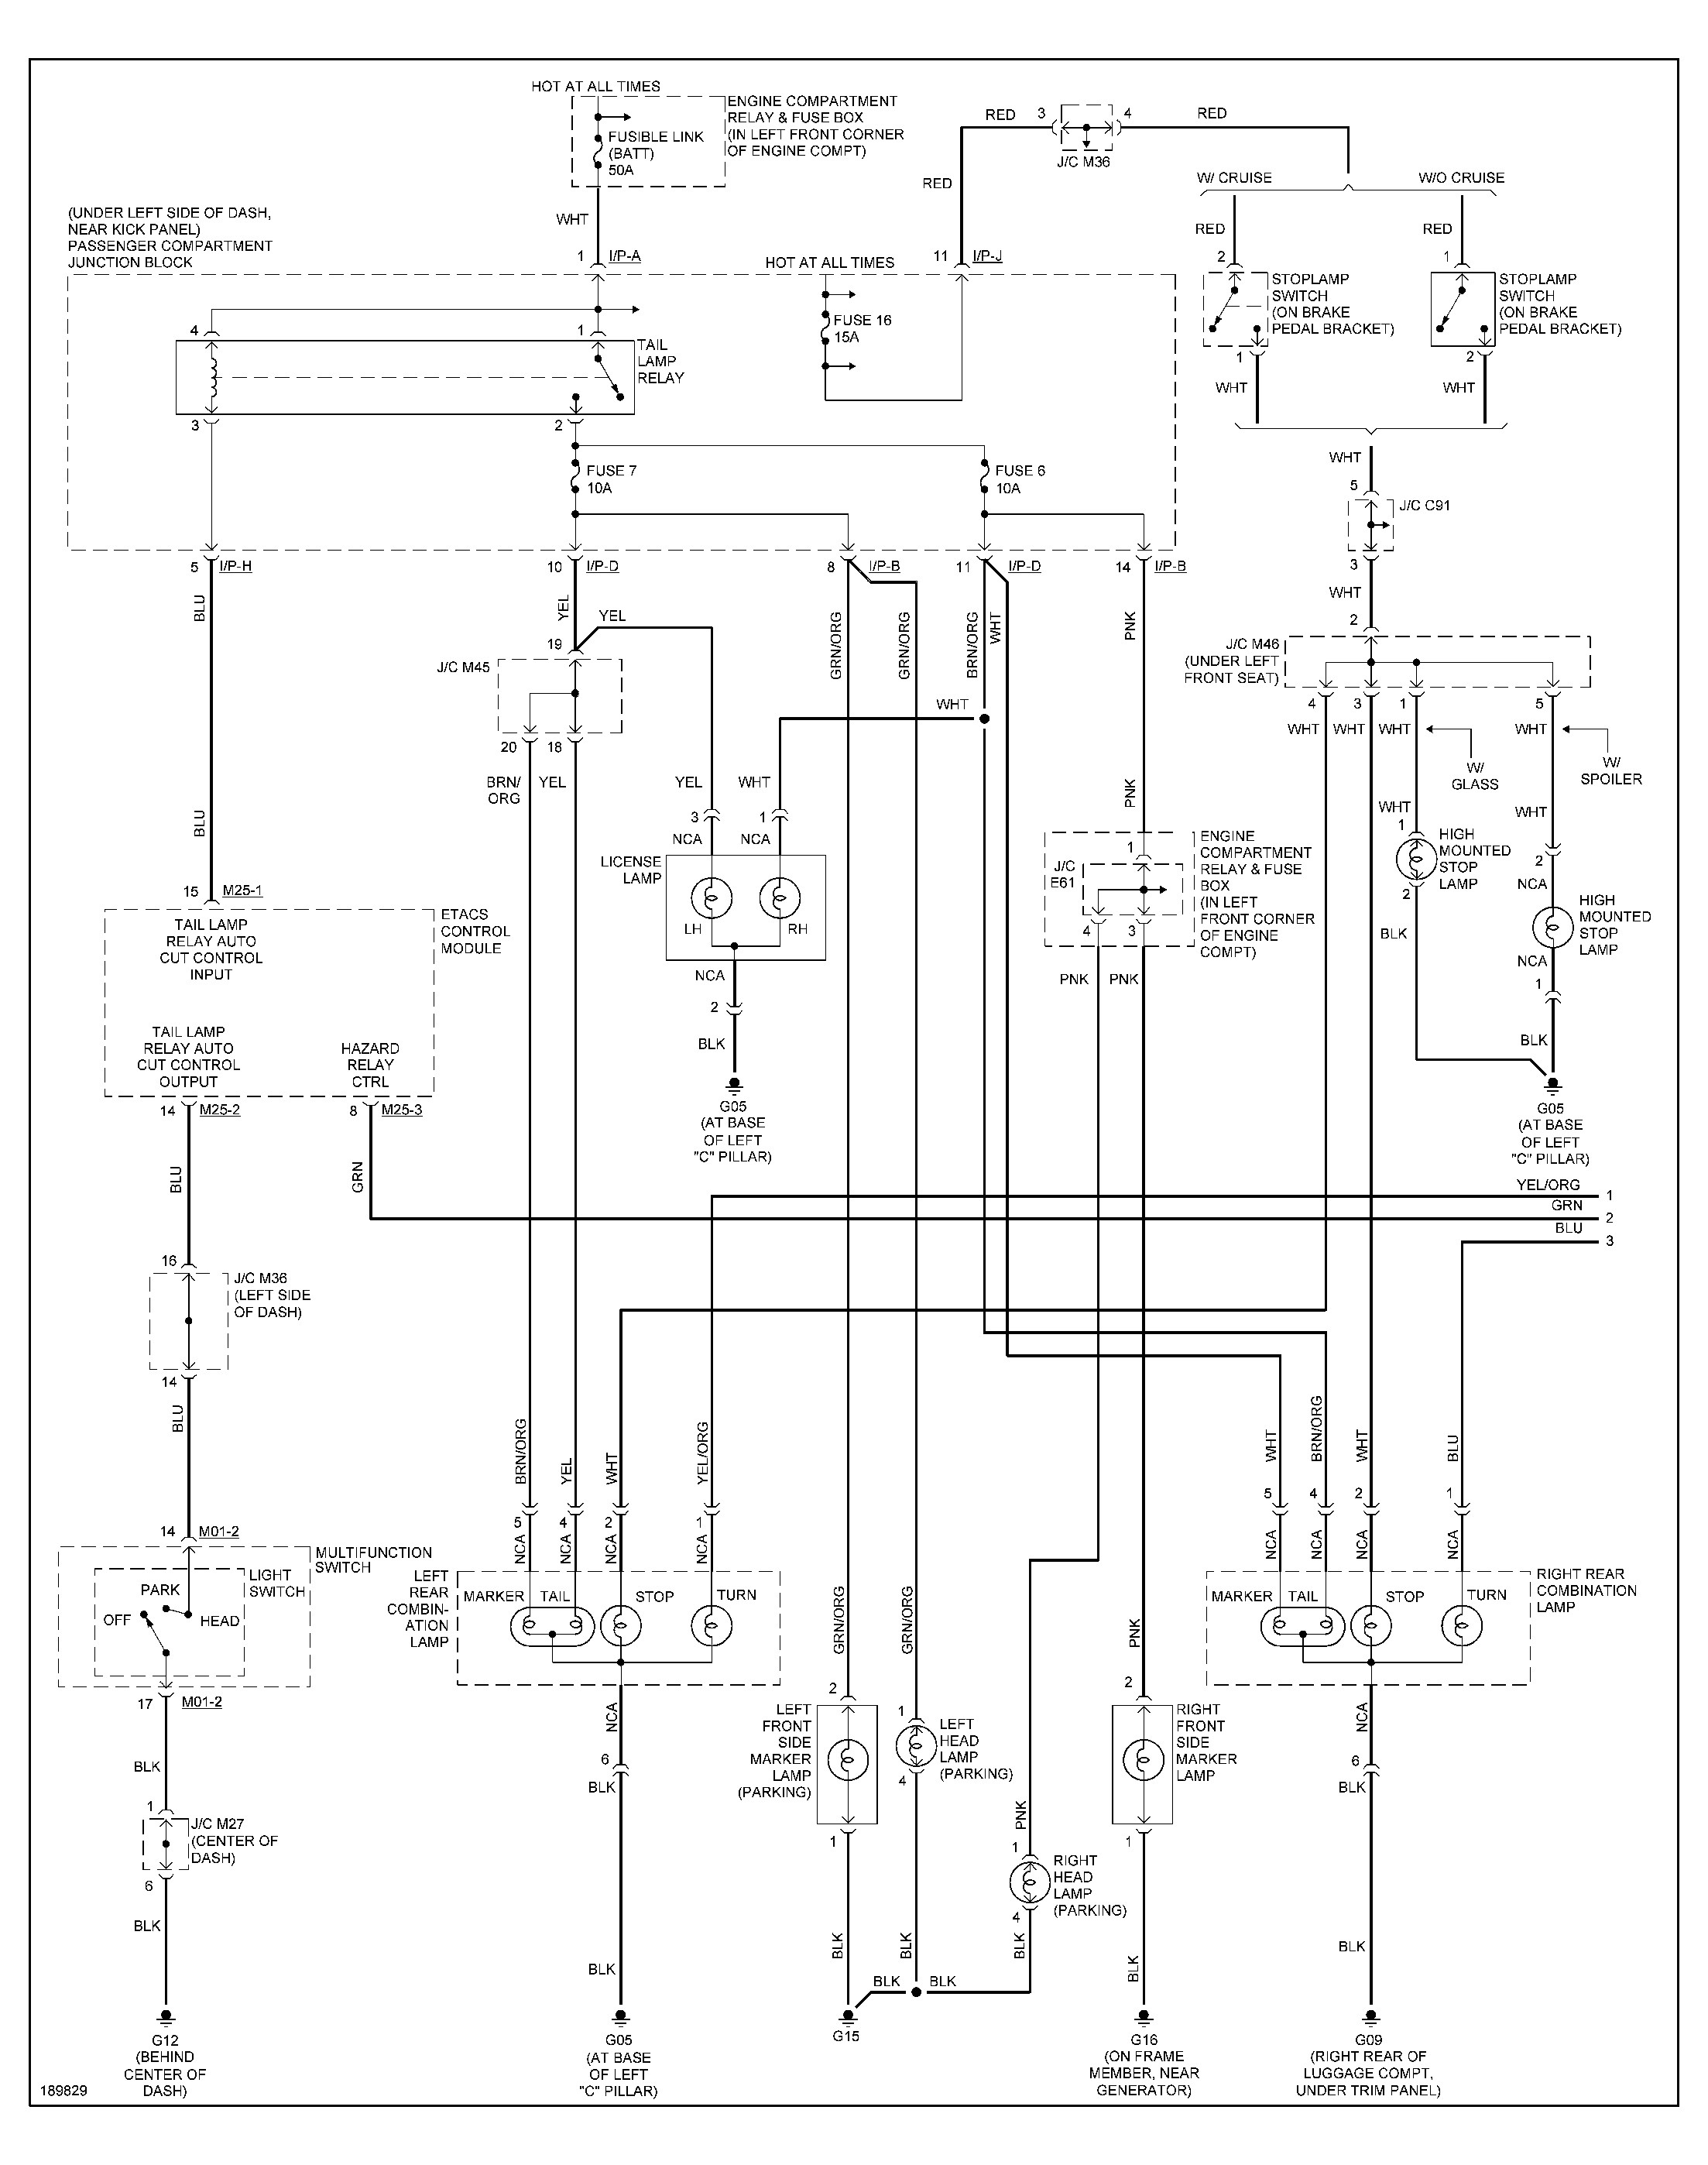 Carrier Literature Wiring Diagrams Gota Wiring Diagram